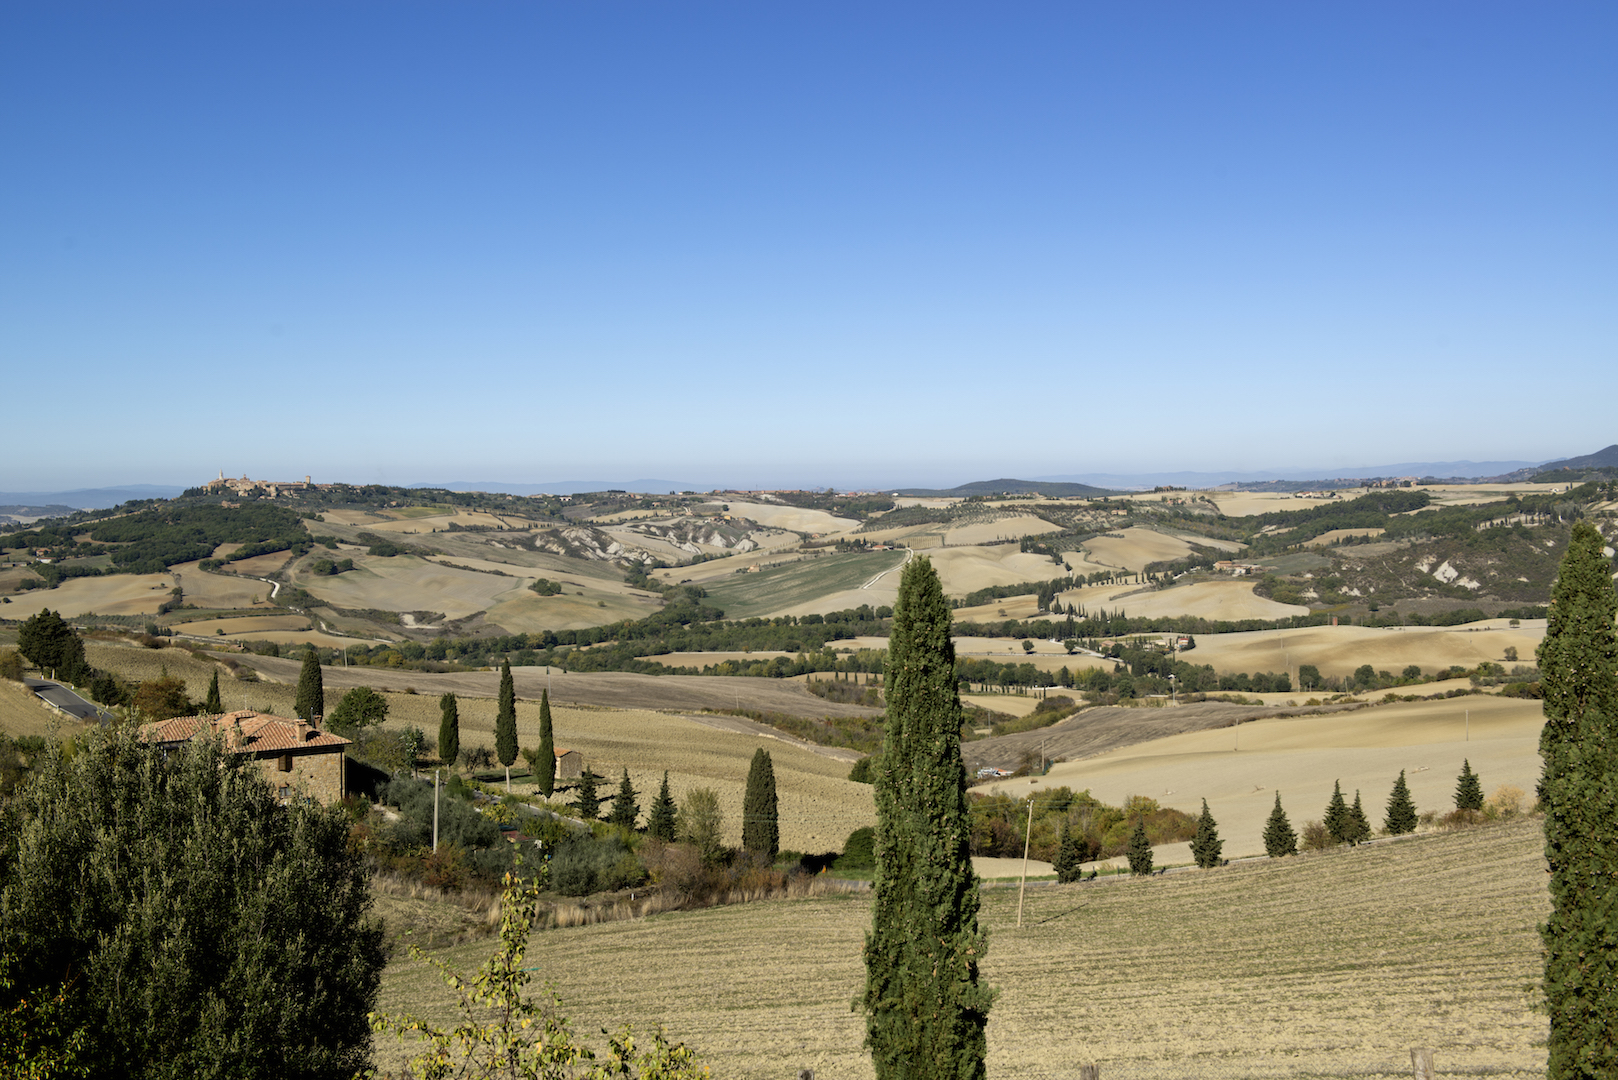 Val d'Orcia: where nature takes your breath away